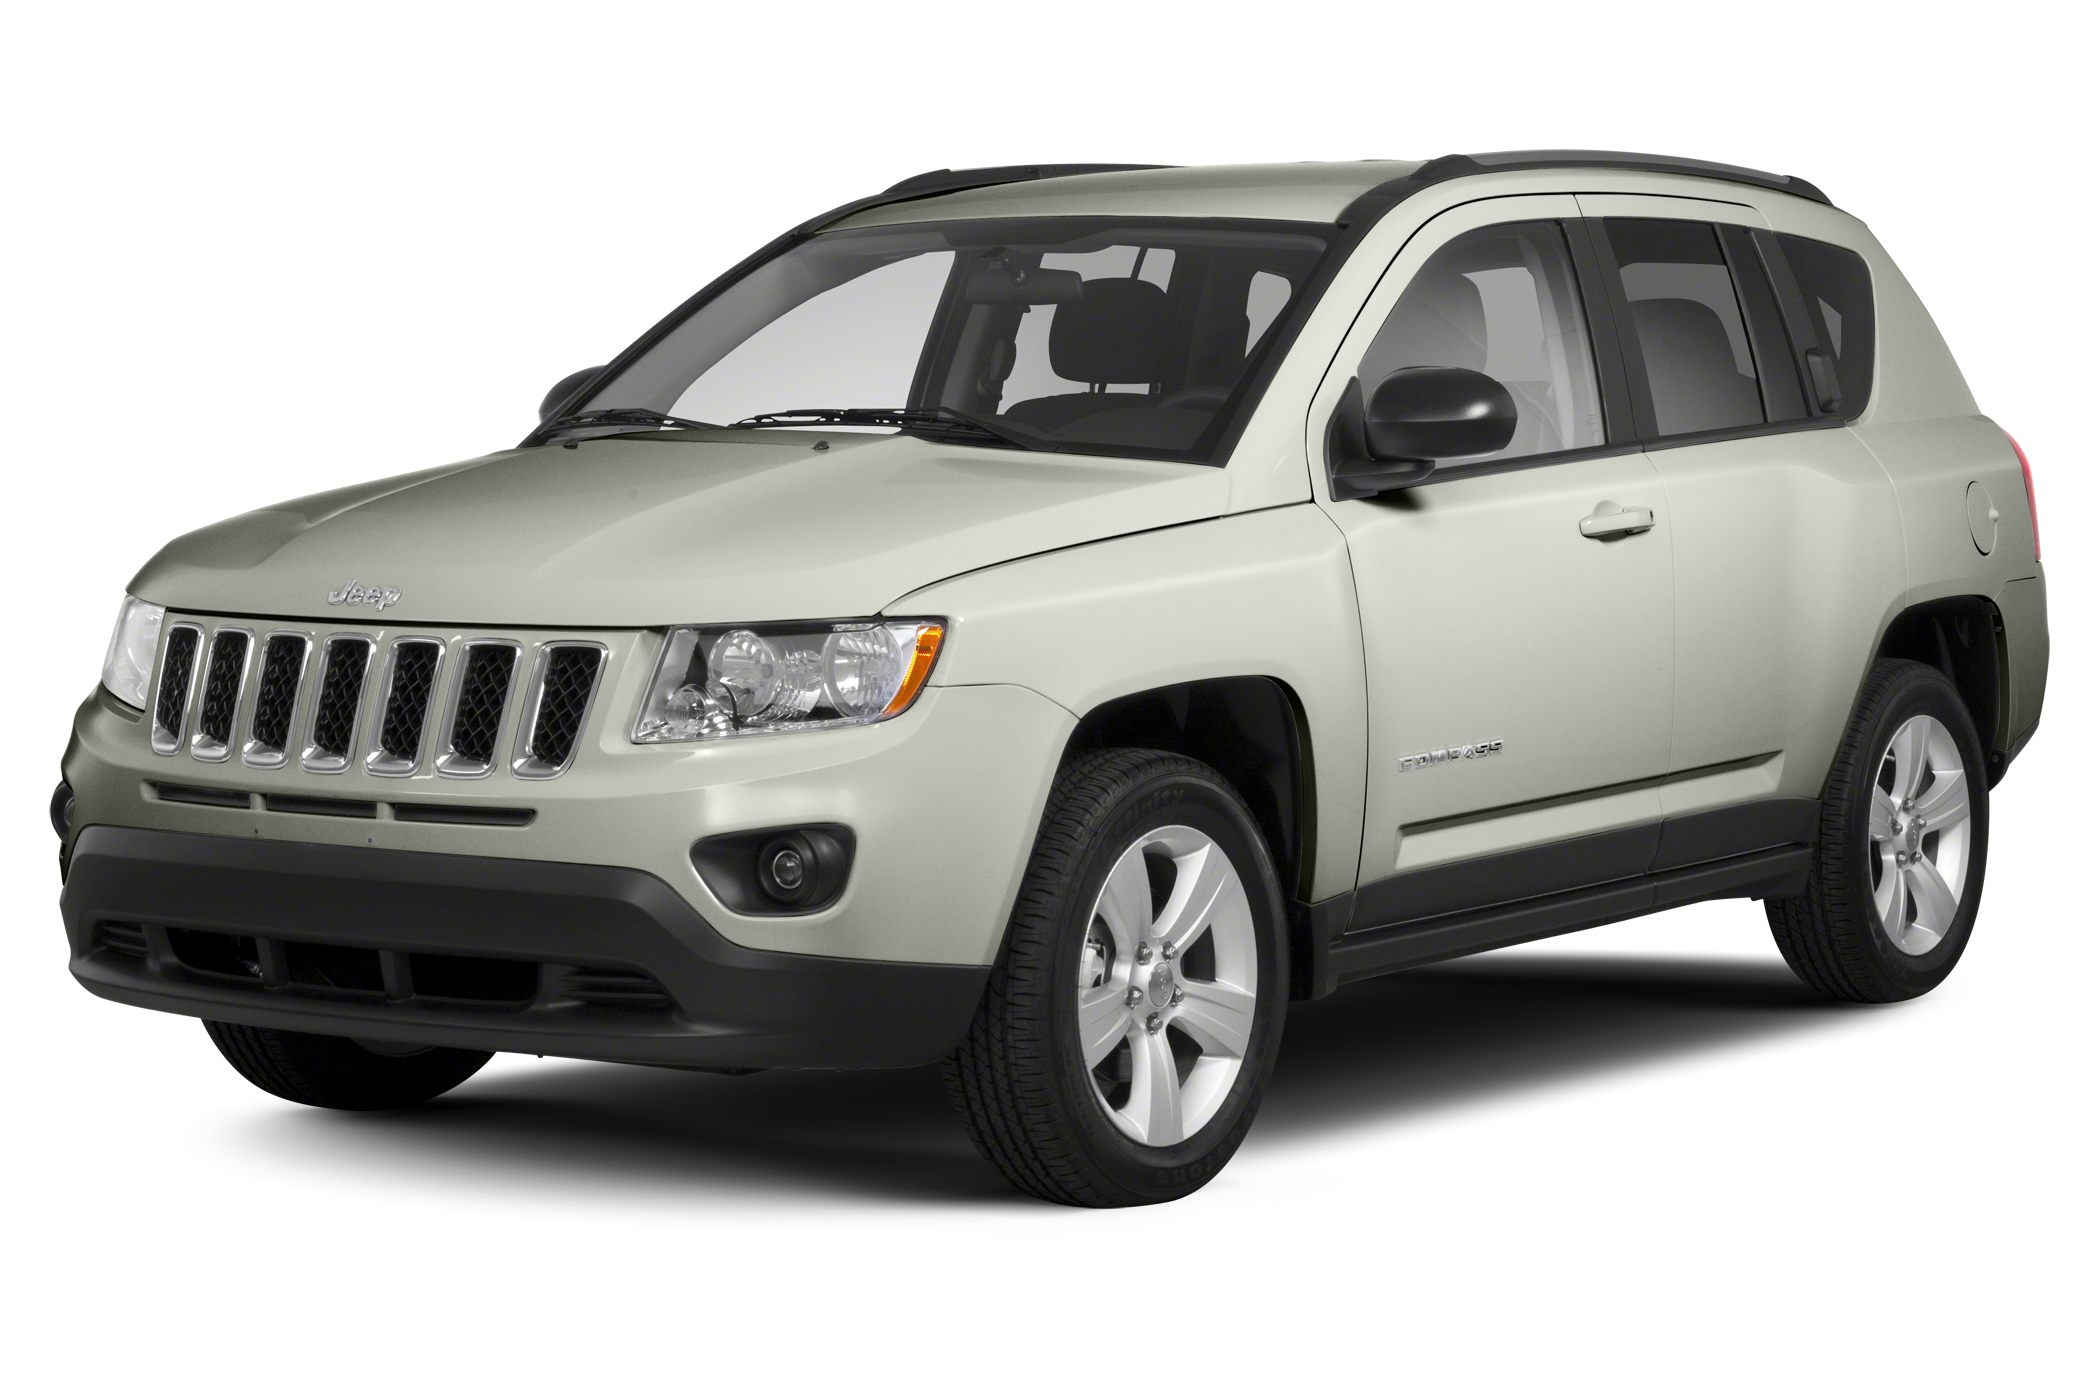 2013 Jeep Compass Sport SUV for sale in Reno for $16,595 with 29,654 miles.